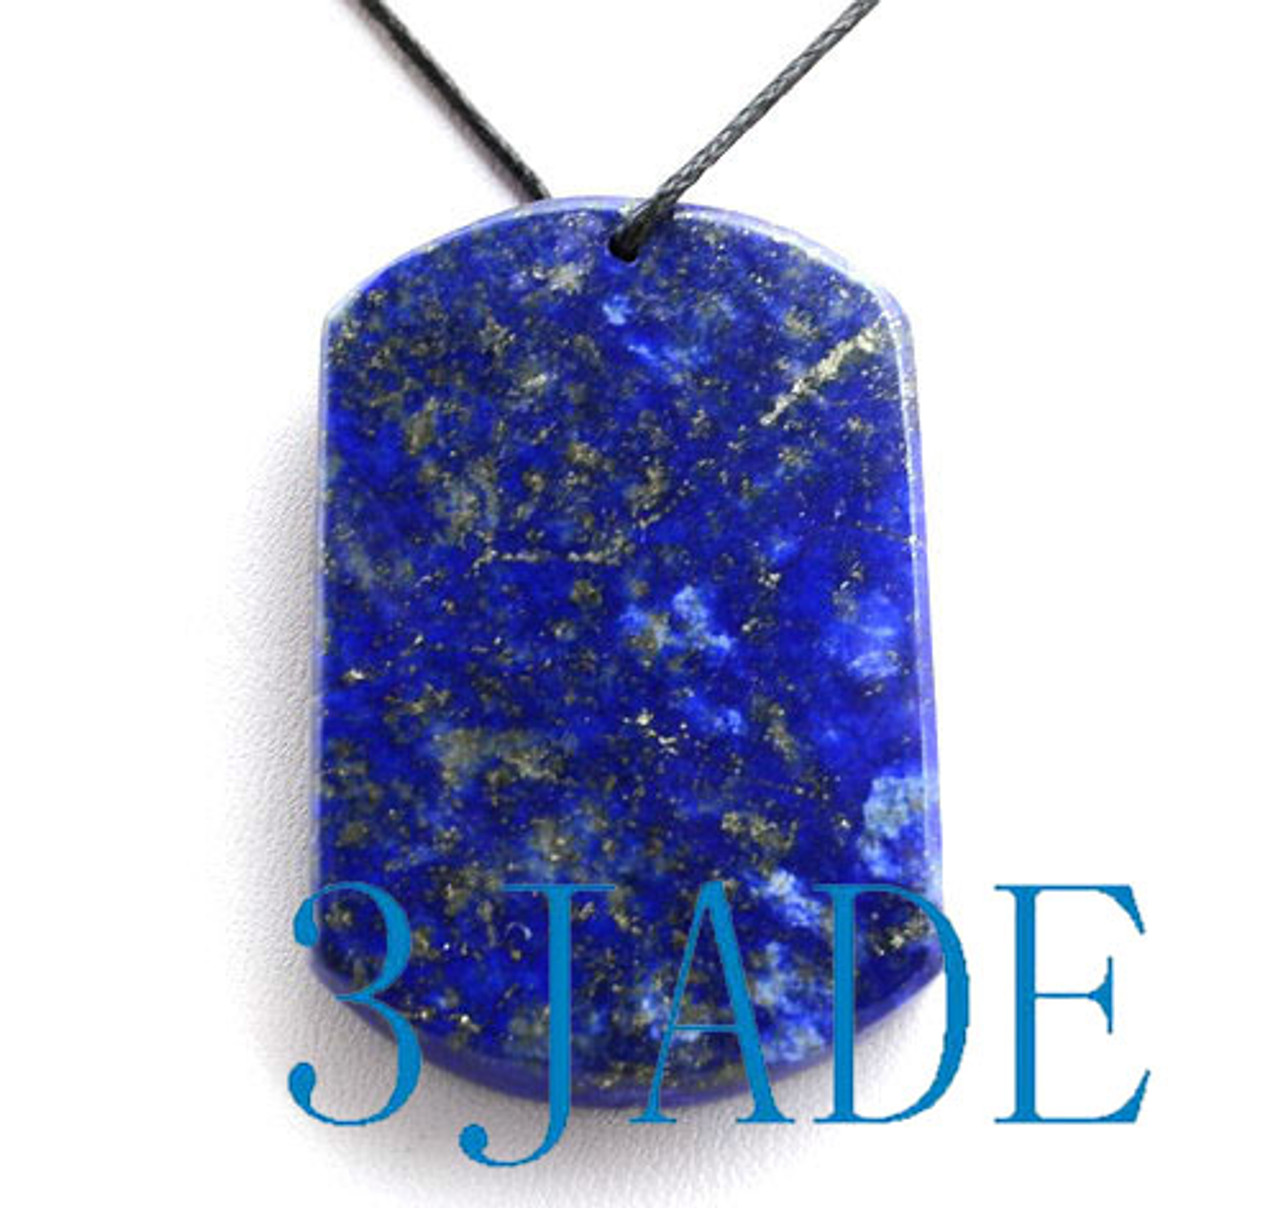 Natural Lapis Lazuli Gemstone Uphill Tiger Pendant Necklace